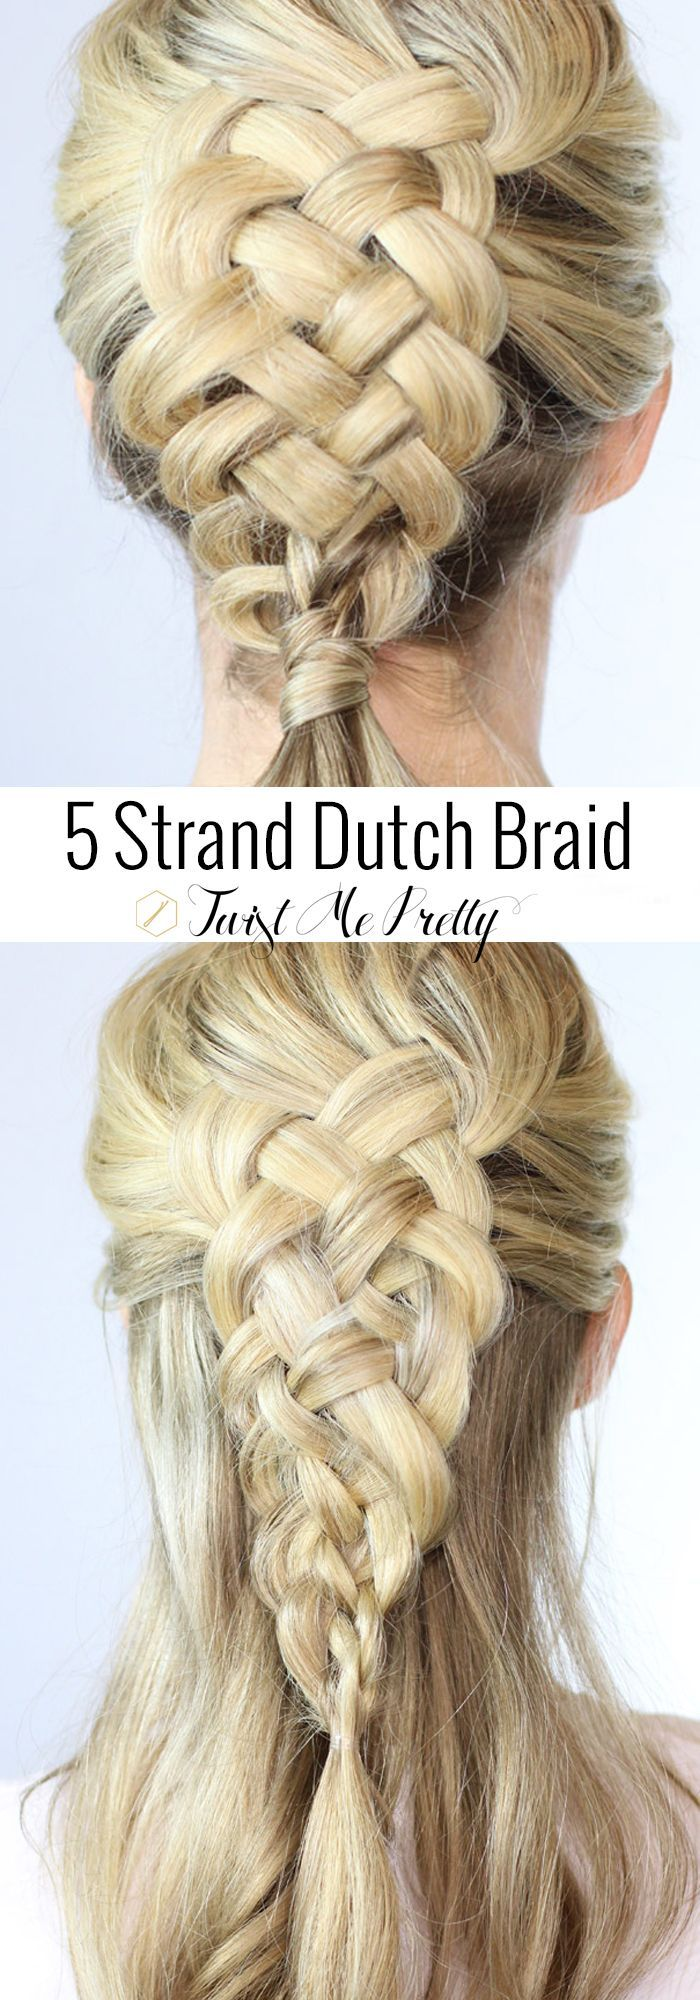 17 Stunning Dutch Braid Hairstyles With Tutorials 5